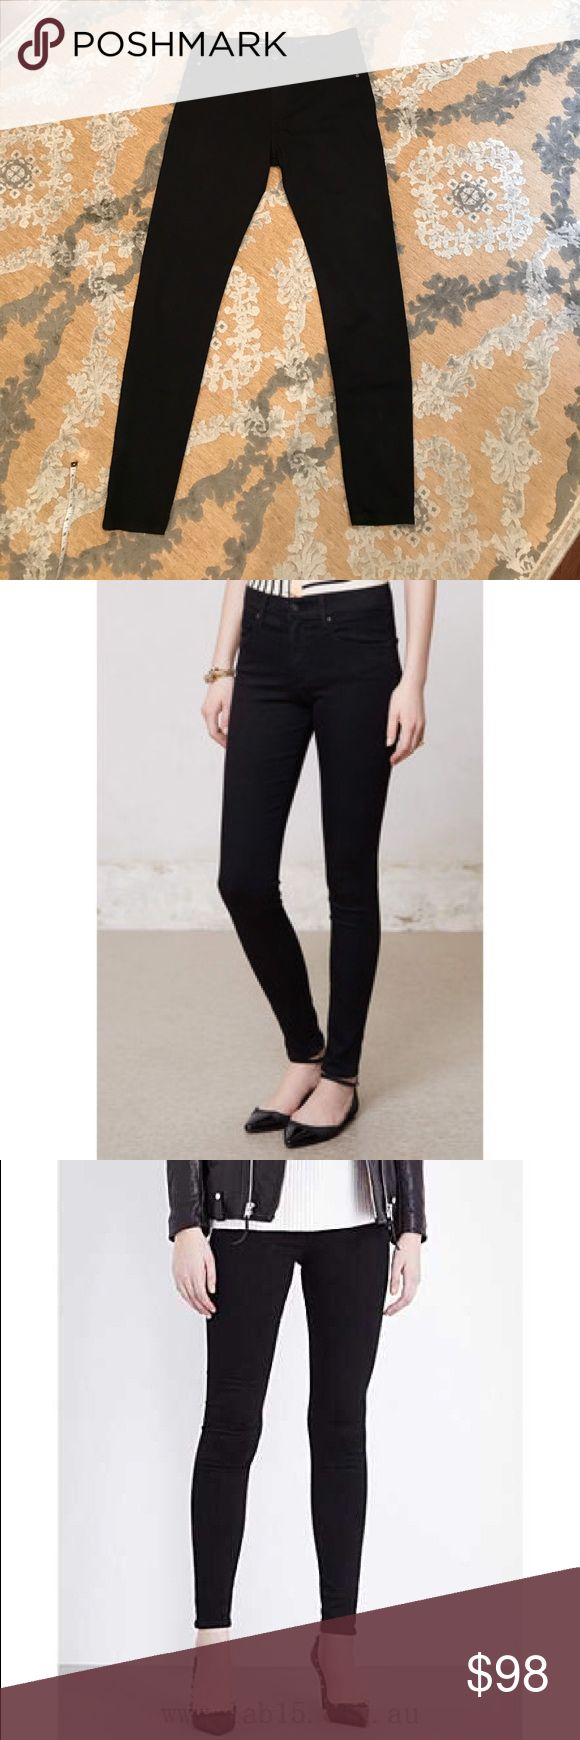 """AG Farrah High Rise Skinnies!!! 👖 These jeans are sexy and soooo comfortable!!! Gently worn a few times but in great condition!! Crafted in jet-black denim, these jeans boast a waist-defining high rise and a sleek, skinny fit that ends perfectly at the ankle! True to size. Inseam - 31"""" Front Rise - 9.75"""" Leg Opening - 9.5"""" AG Adriano Goldschmied Jeans Skinny"""